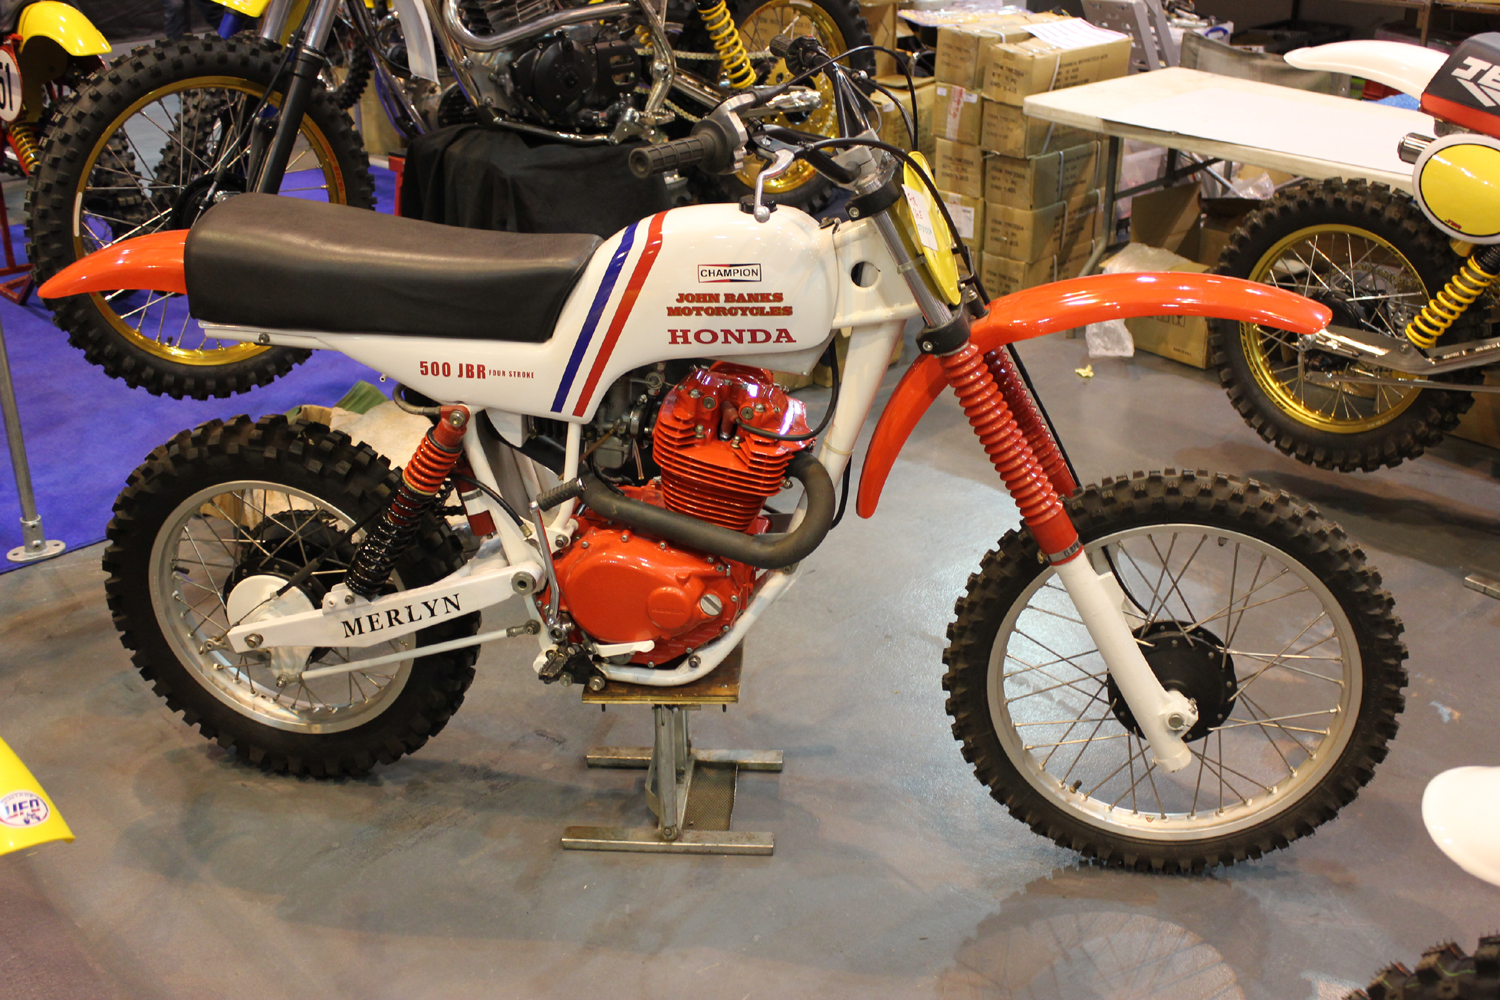 classicdirtbikerider.com-photo by Mr J-2015 Telford classic dirt bike show-JOHN BANKS TWINSHOCK HONDA MOTOCROSS BIKE